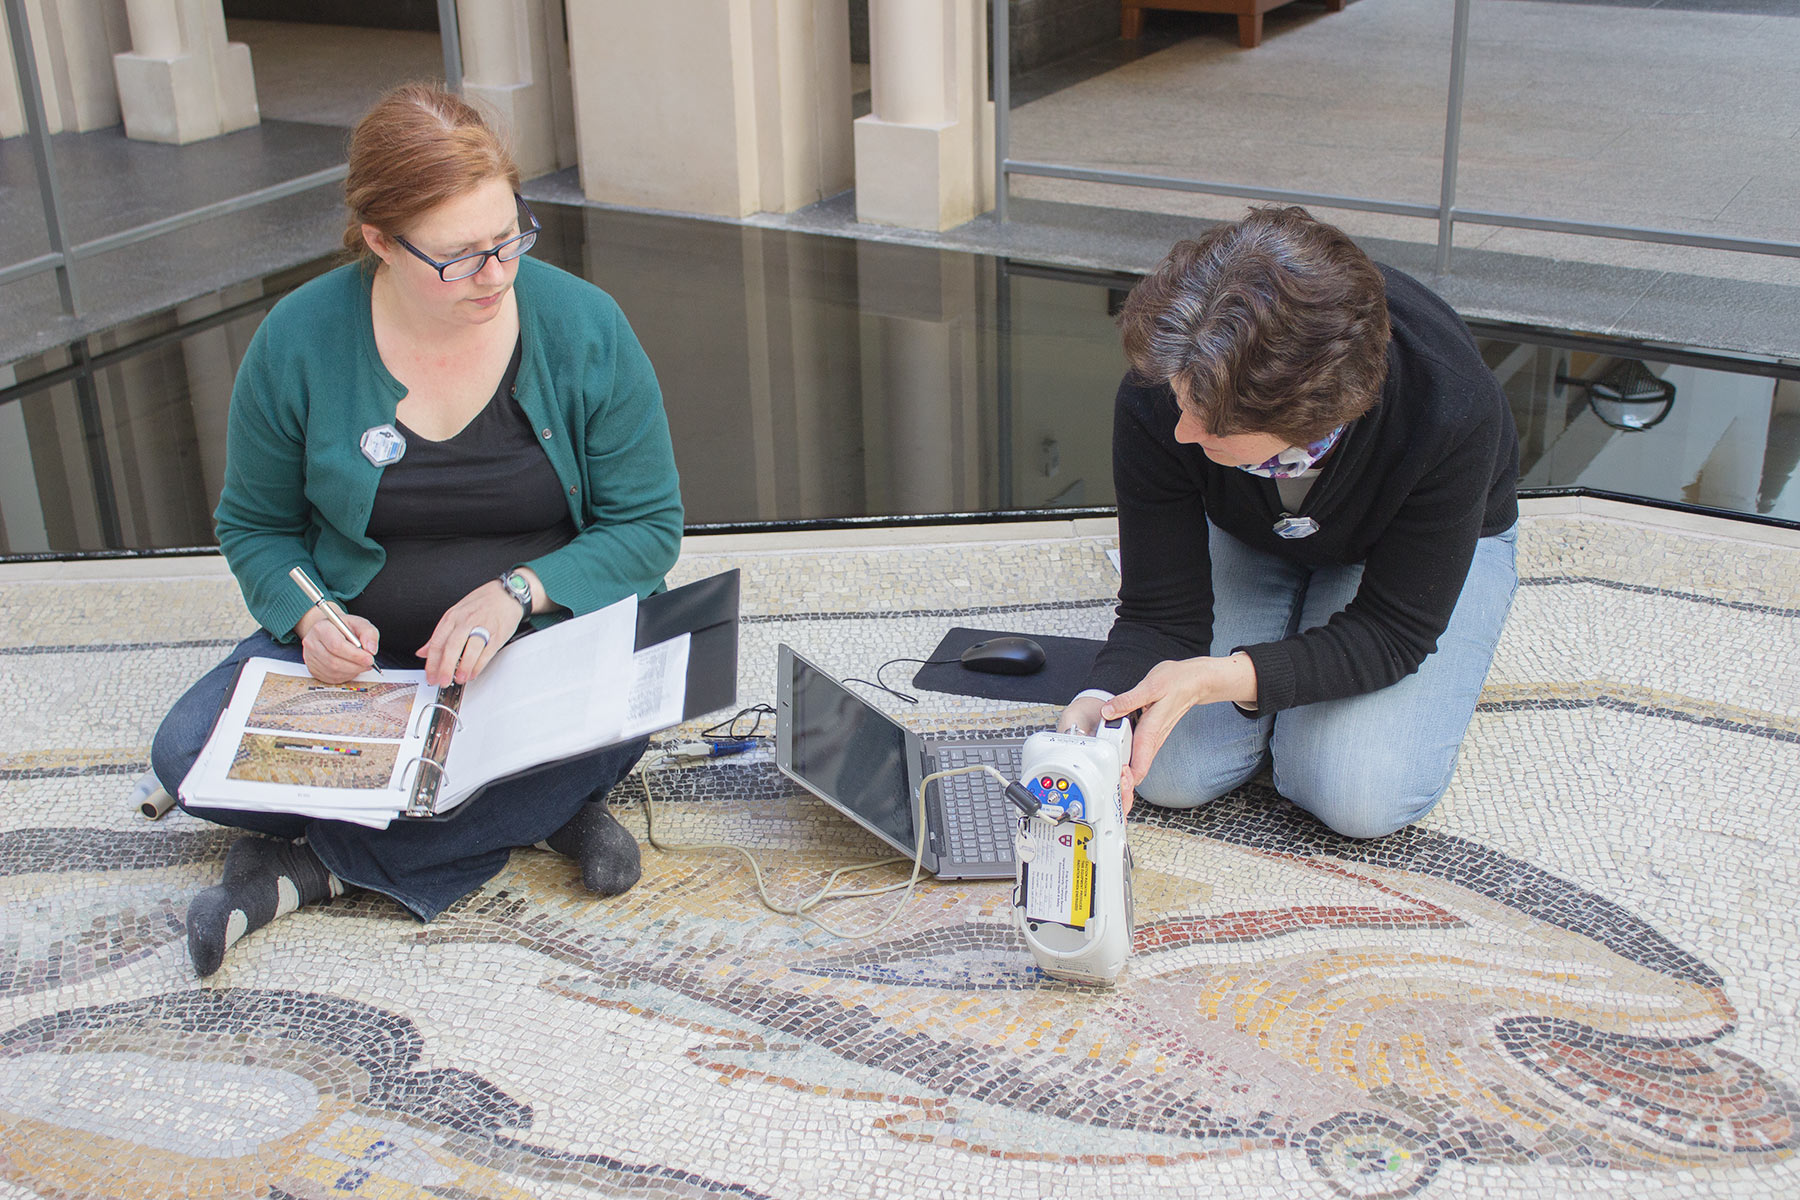 Elizabeth LaDuc, left, of University College London and former fellow in the objects lab of the Straus Center for Conservation and Technical Studies, and Katherine Eremin, the Patricia Cornwell Senior Conservation Scientist in the Straus Center, use a handheld XRF scanner to study the tesserae in the mosaic.